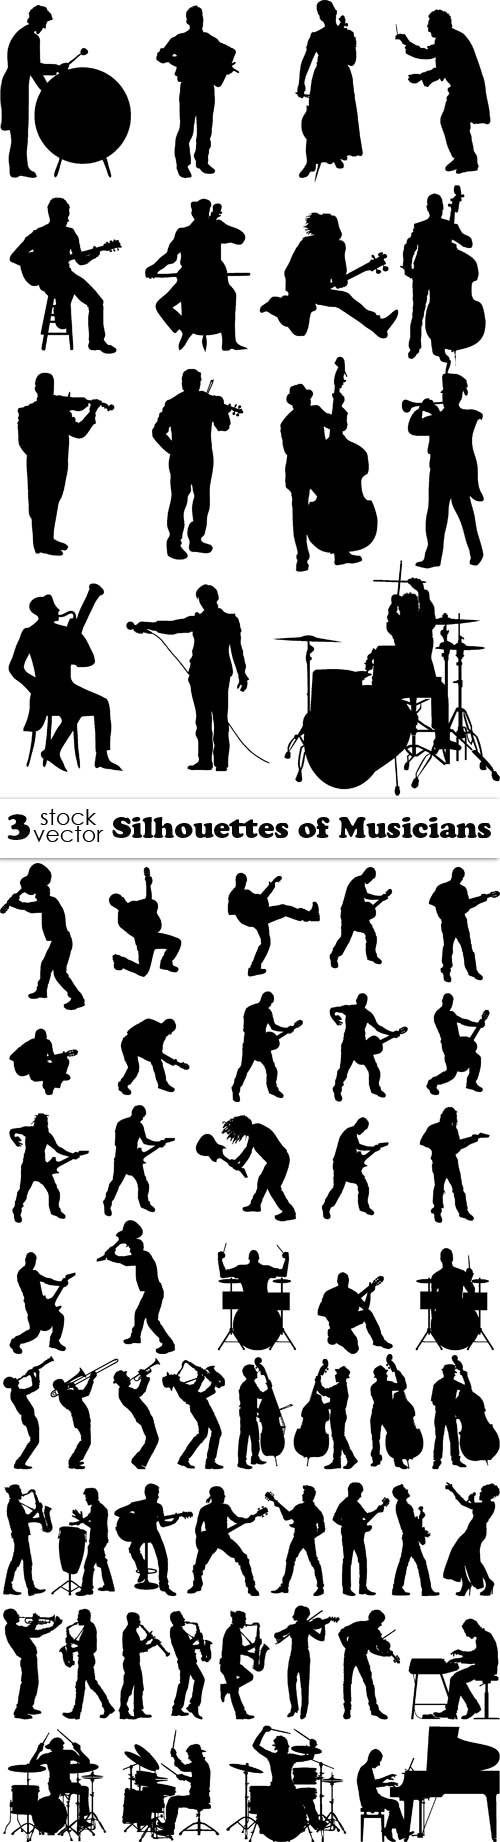 Vectors - Silhouettes of Musicians